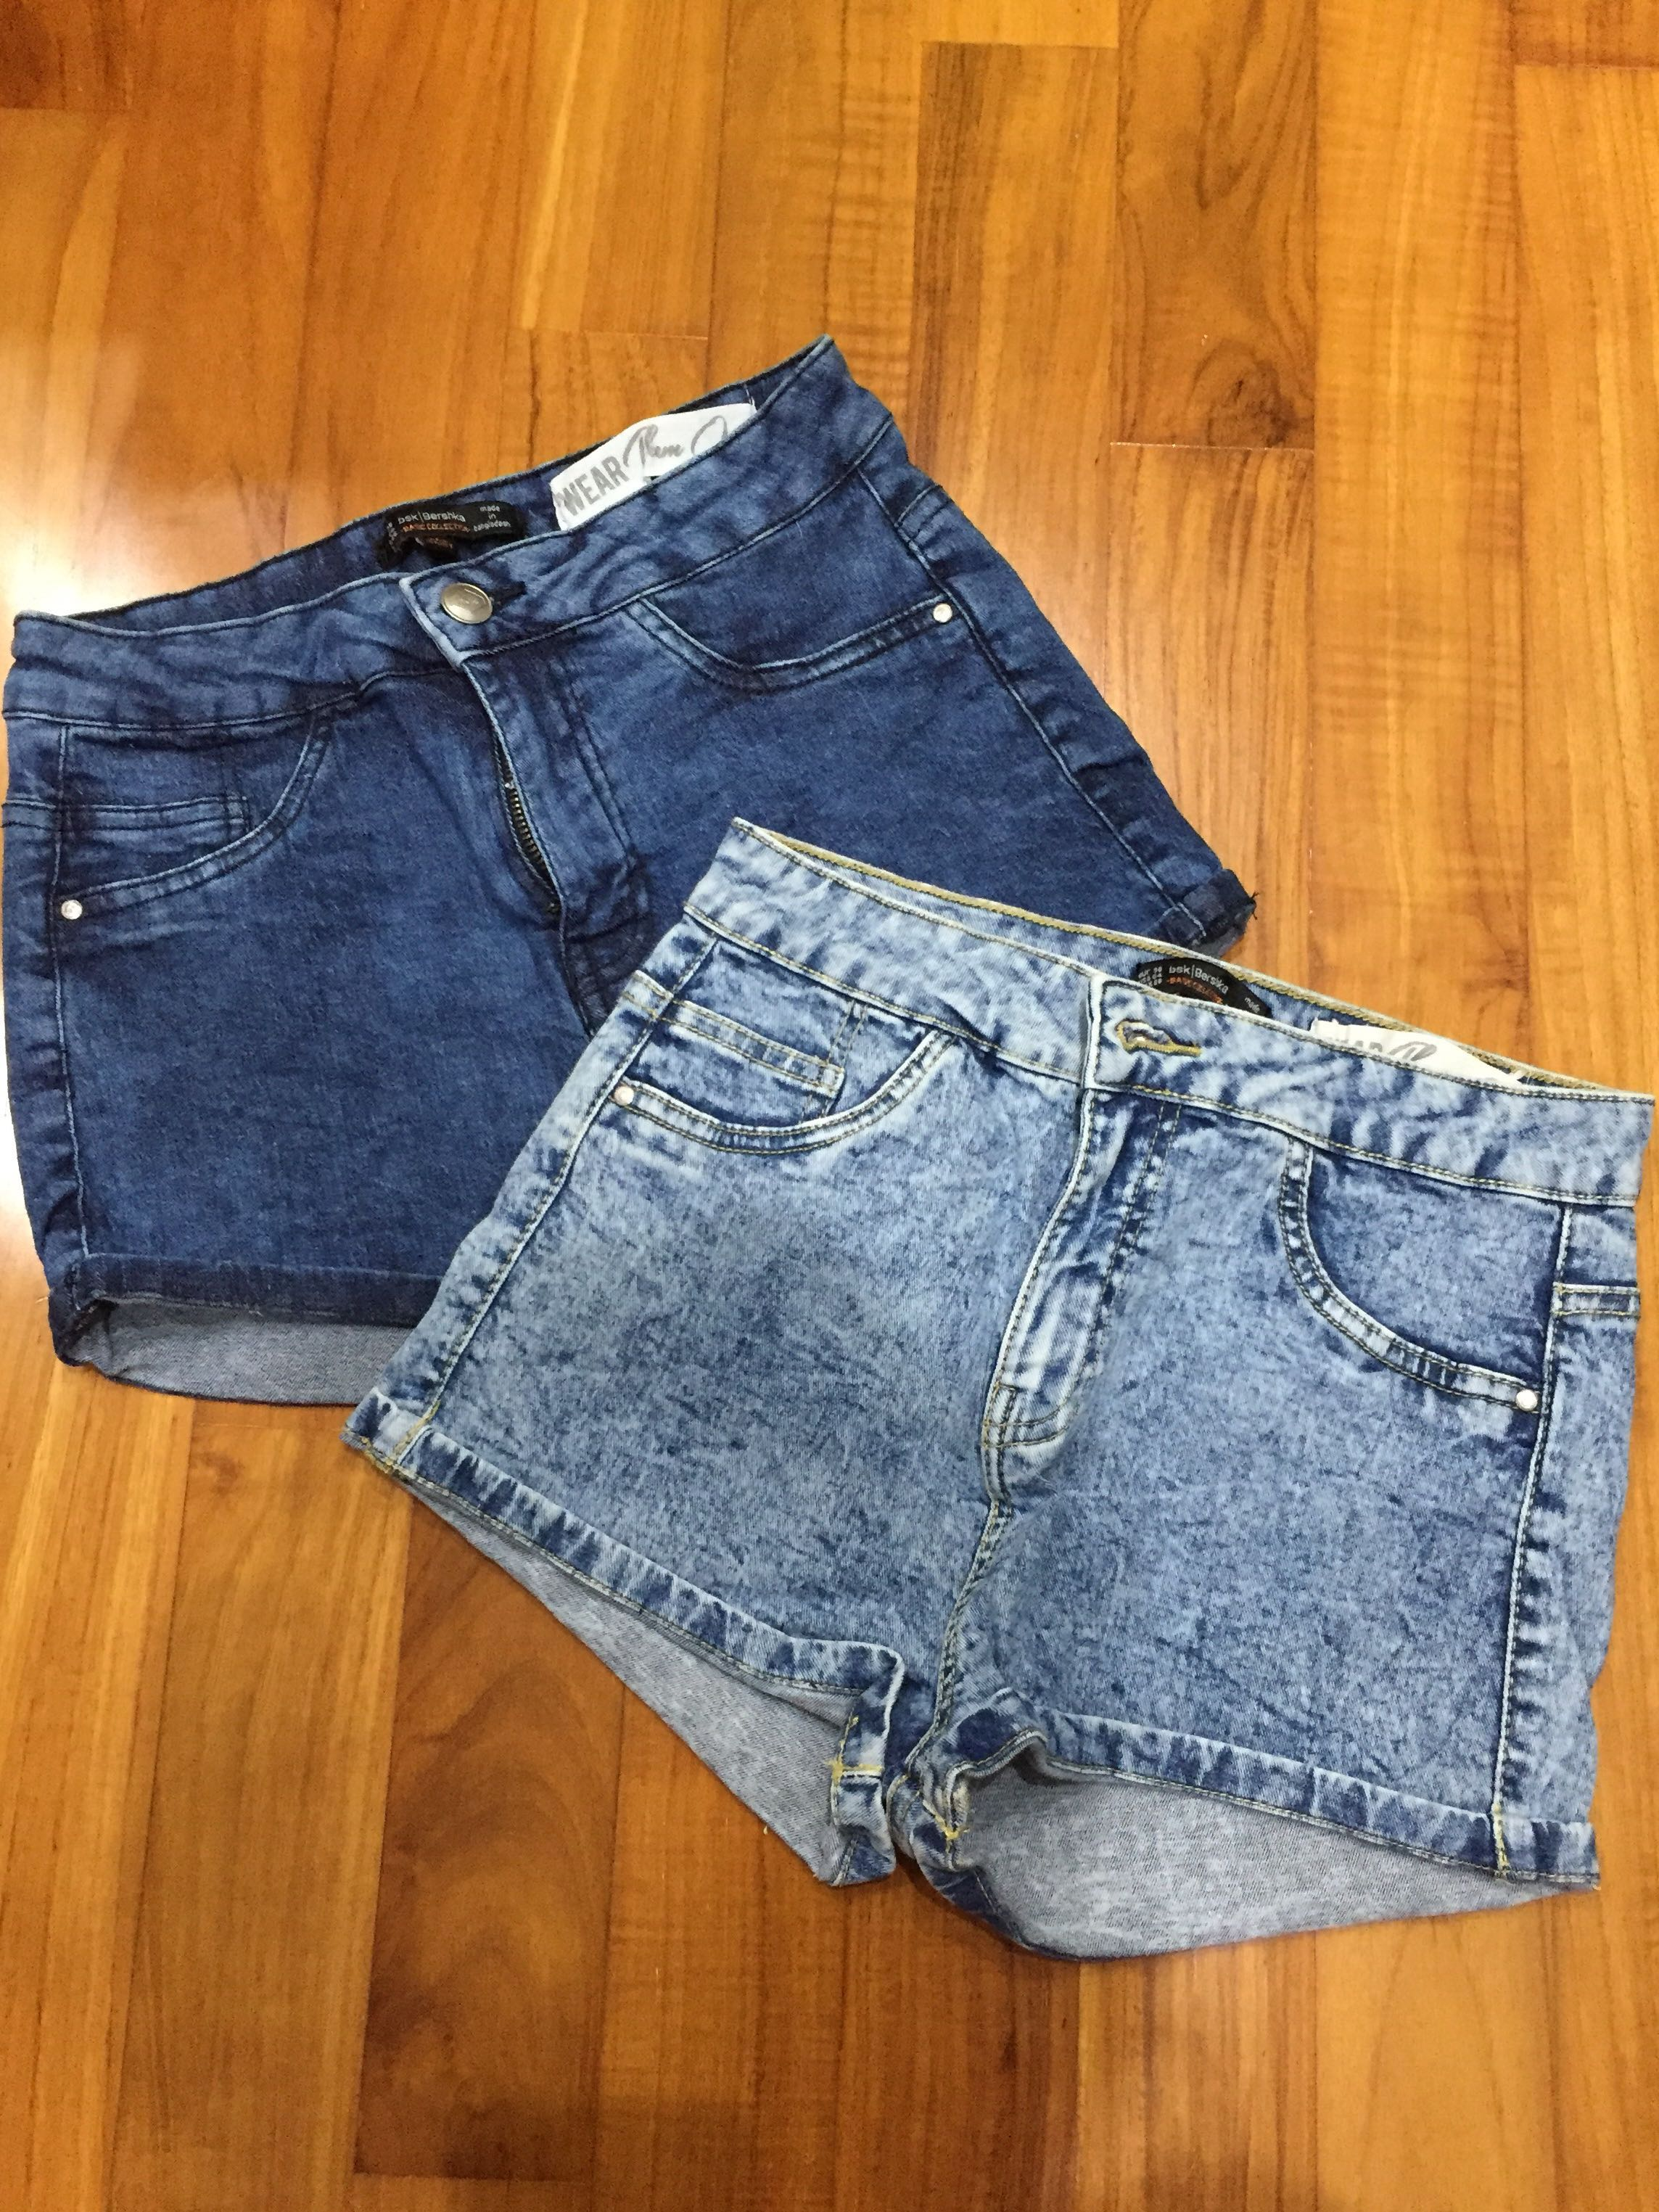 2f8e724931 Bershka Basic Collection High Waisted Denim Shorts, Women's Fashion,  Clothes, Pants, Jeans & Shorts on Carousell